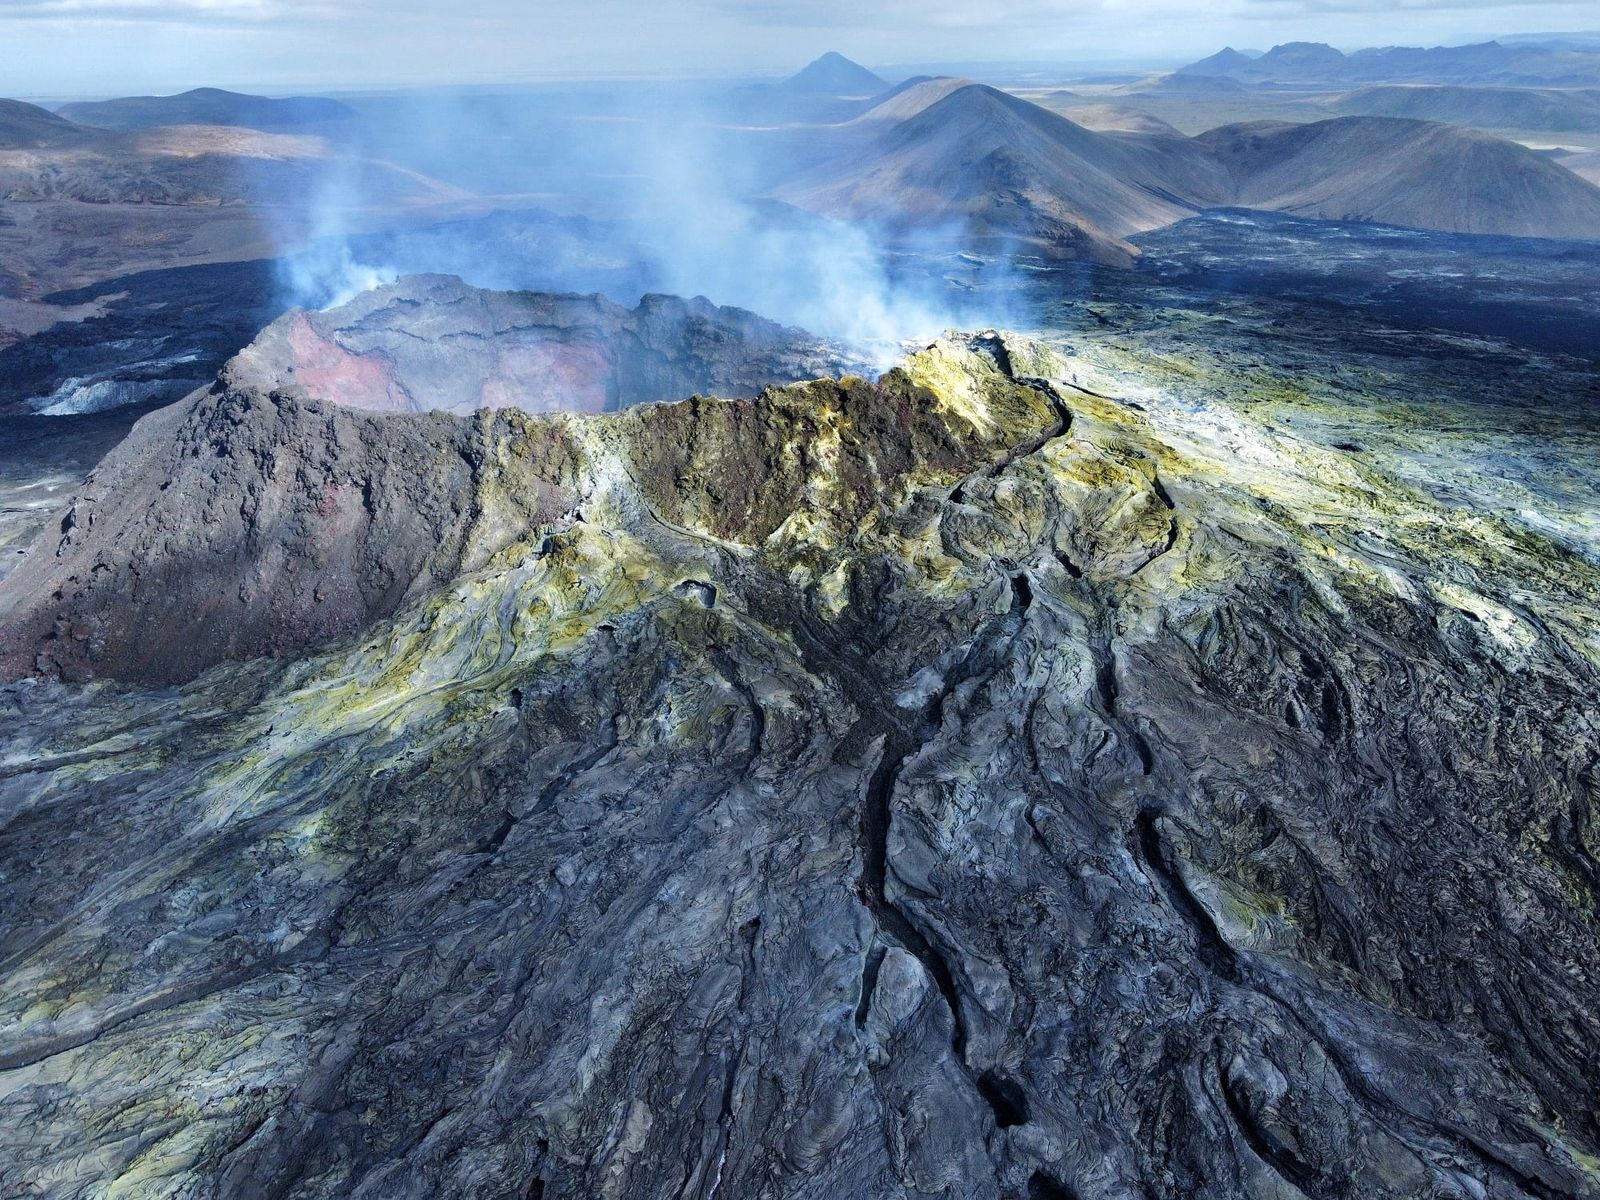 Fagradalsfjall - the active vent - photo Gabriele Formentini 09.09.2021 / Iceland Geology Seismic & Volcanic Activity in Iceland